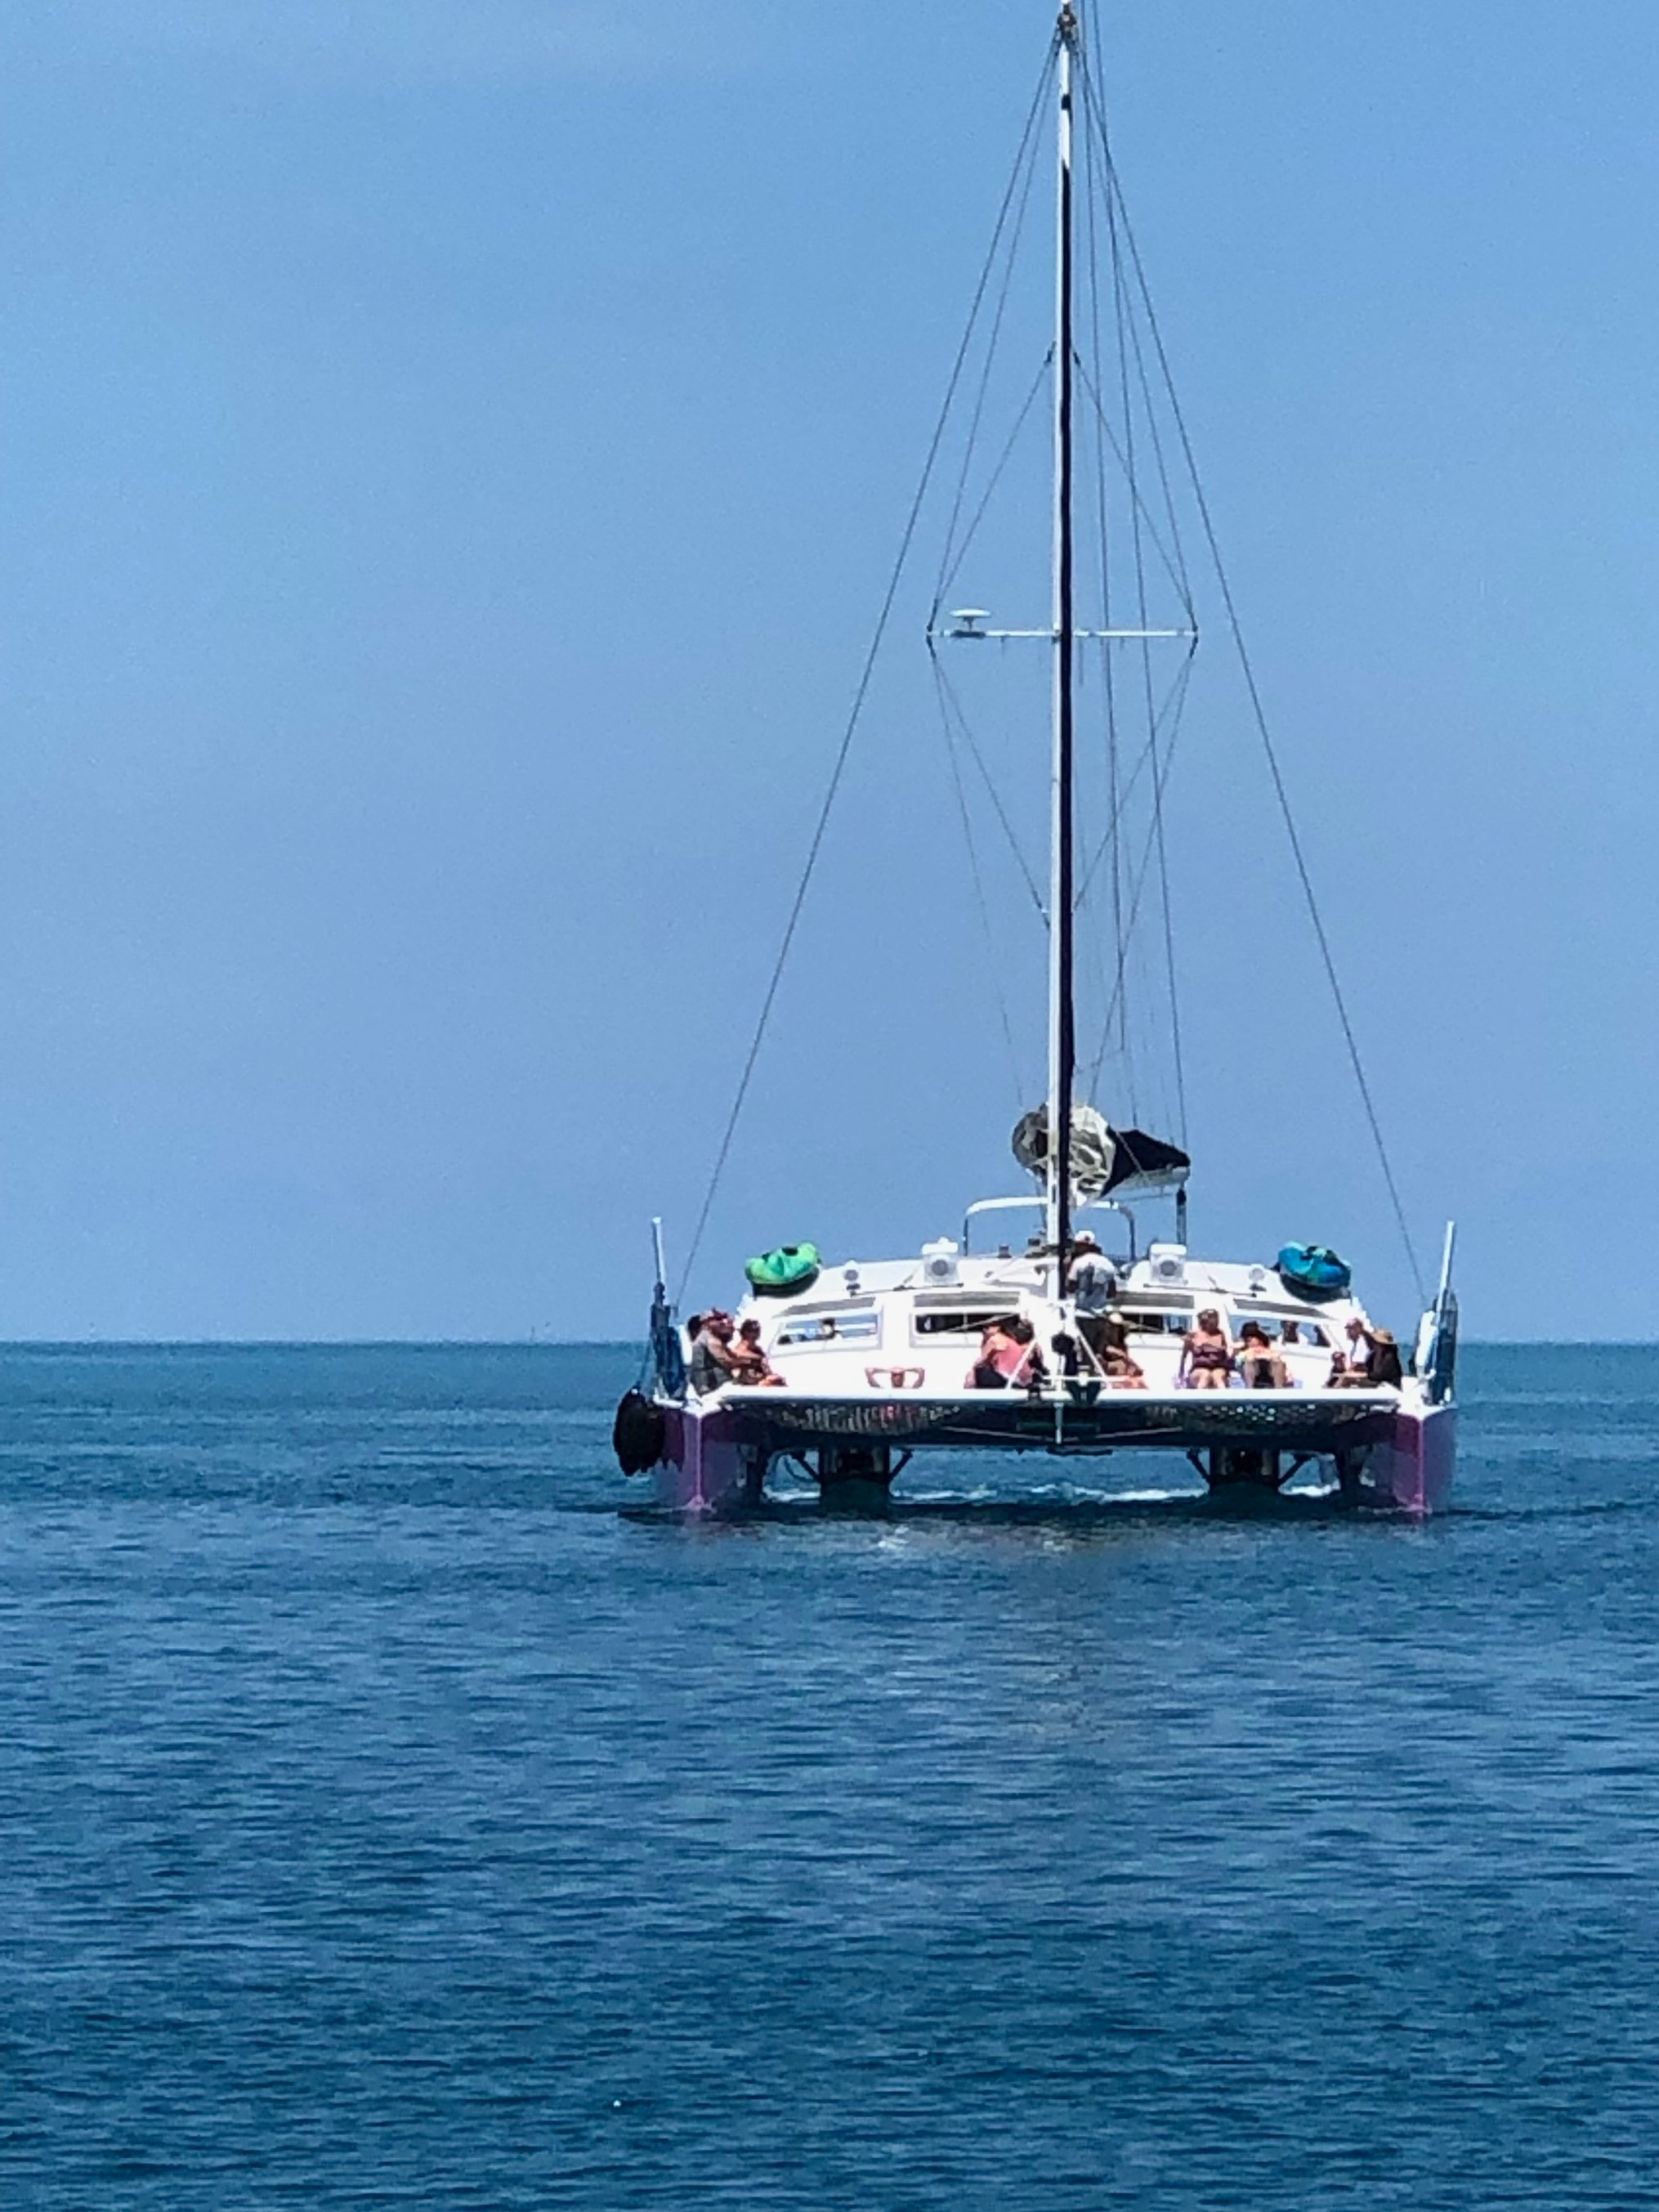 V and i went out reef snorkeling on a catamaran like this one, called AristoCat. High point of the trip for me!